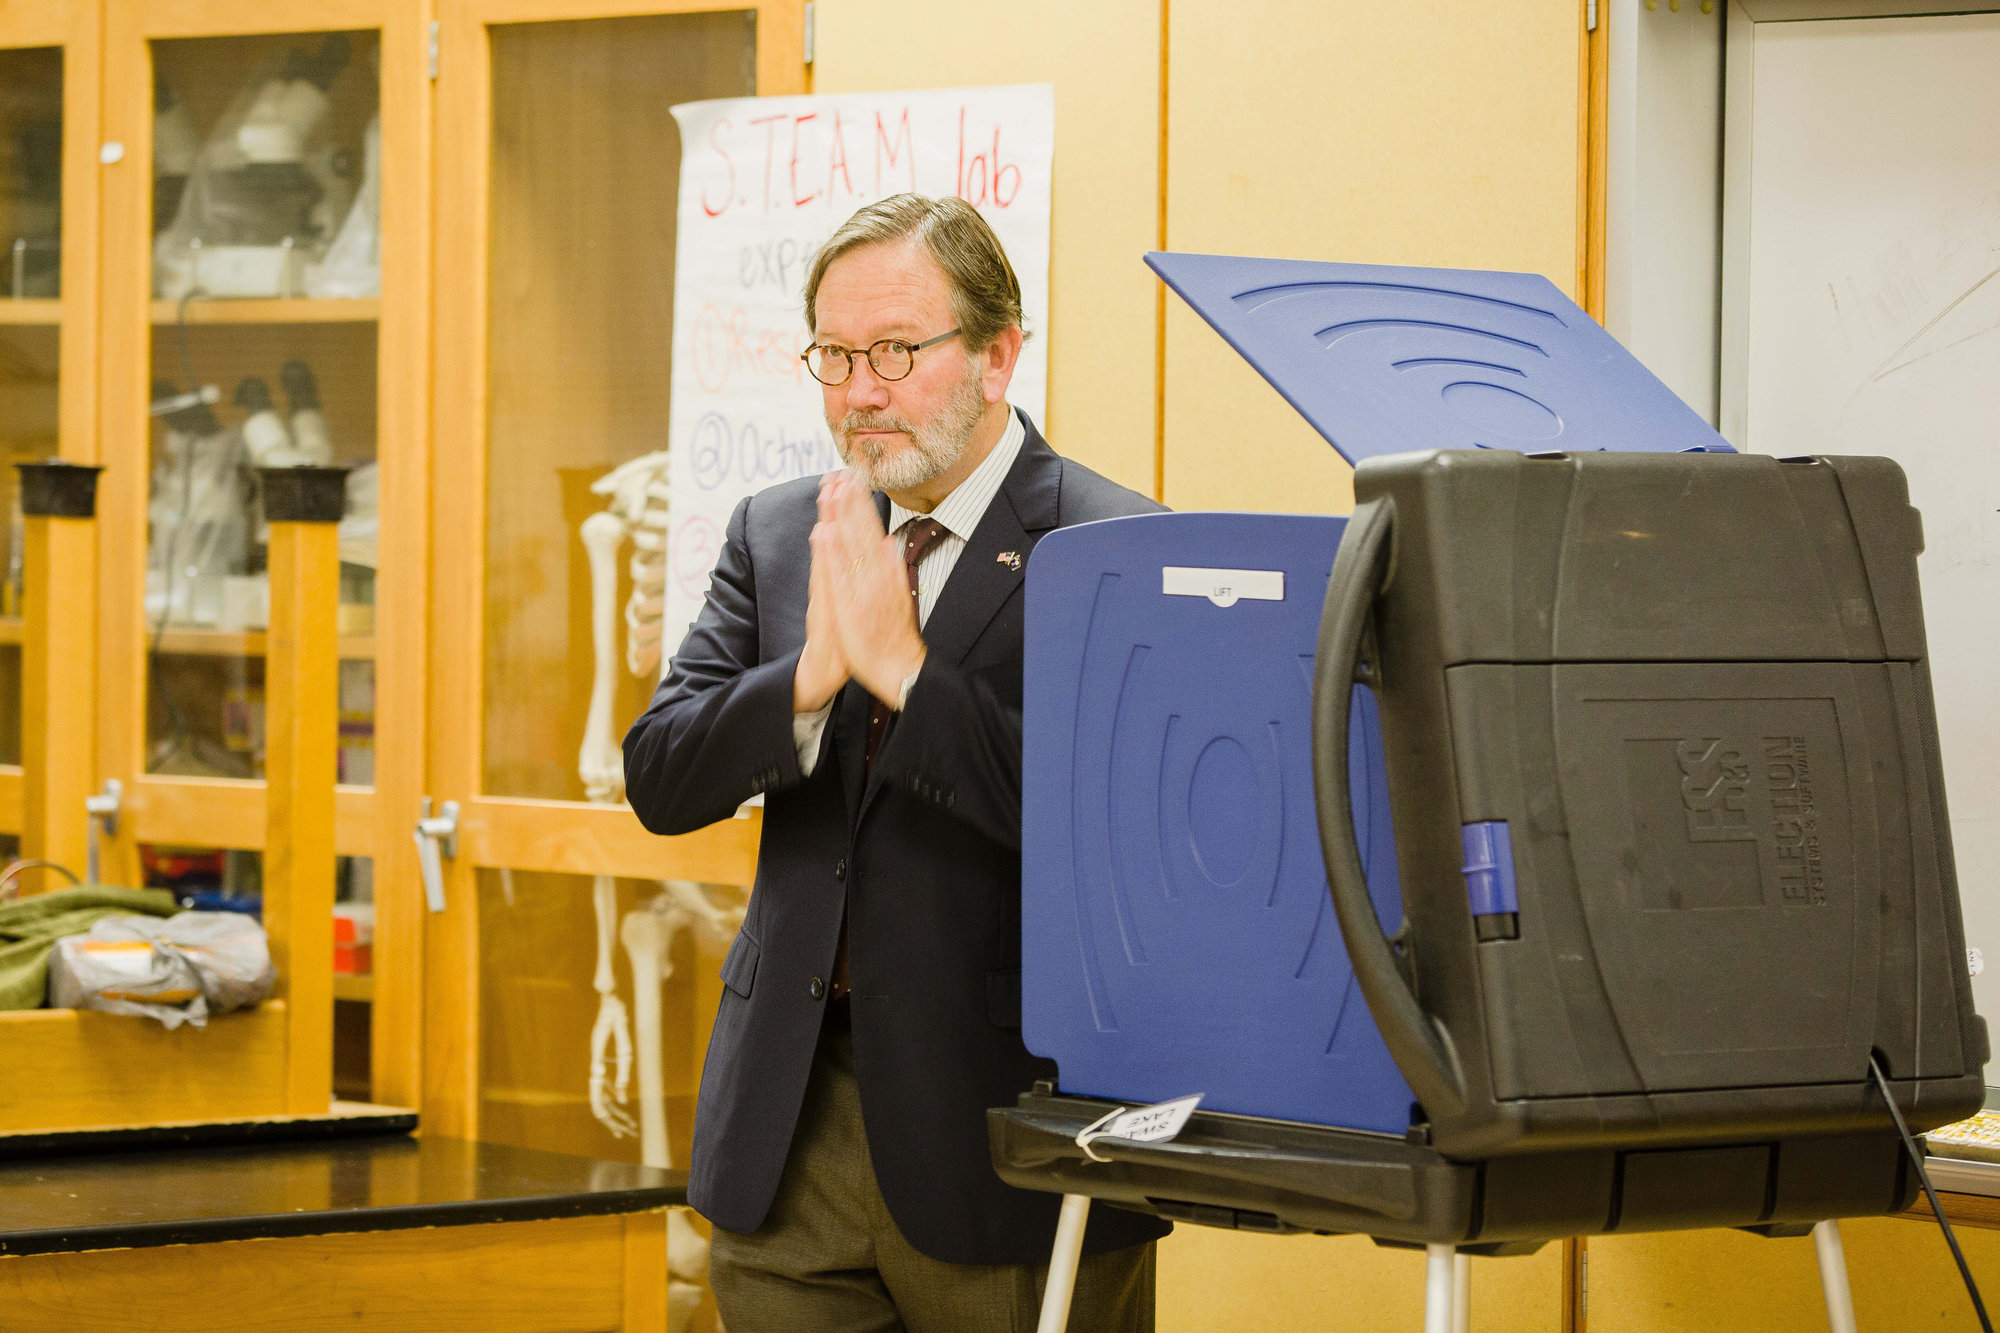 5th Congressional District Democratic hopeful Archie Parnell after voting at Willow Drive Elementary on Tuesday.